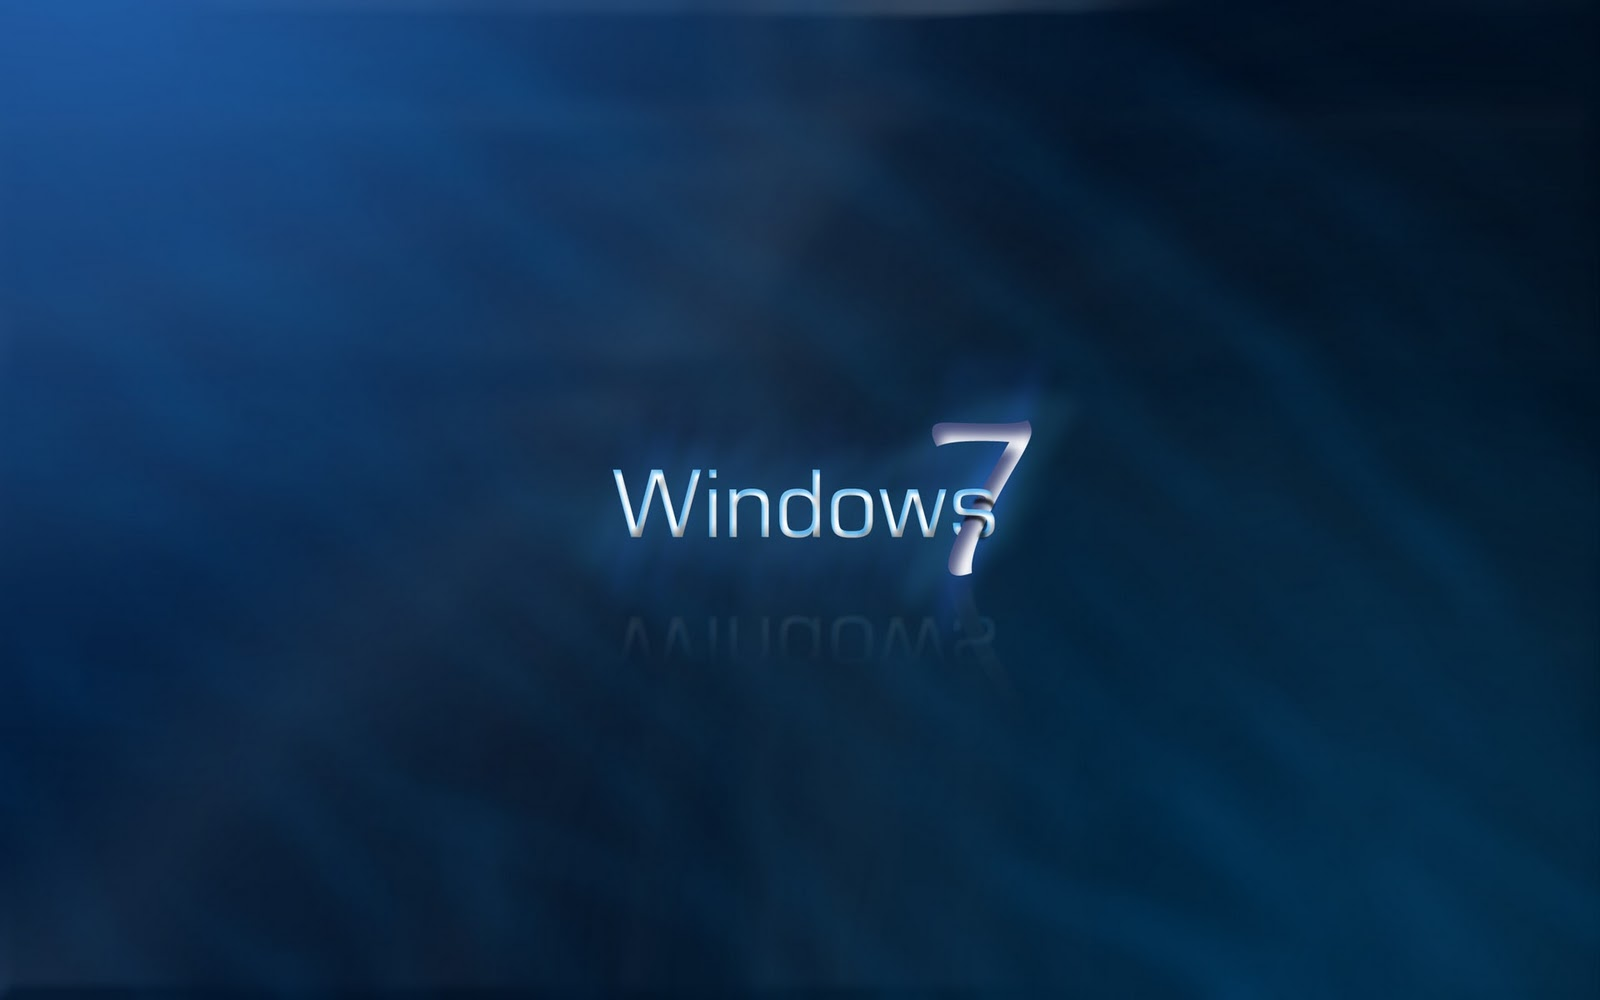 windows 7 wallpapers | wallpaper hd